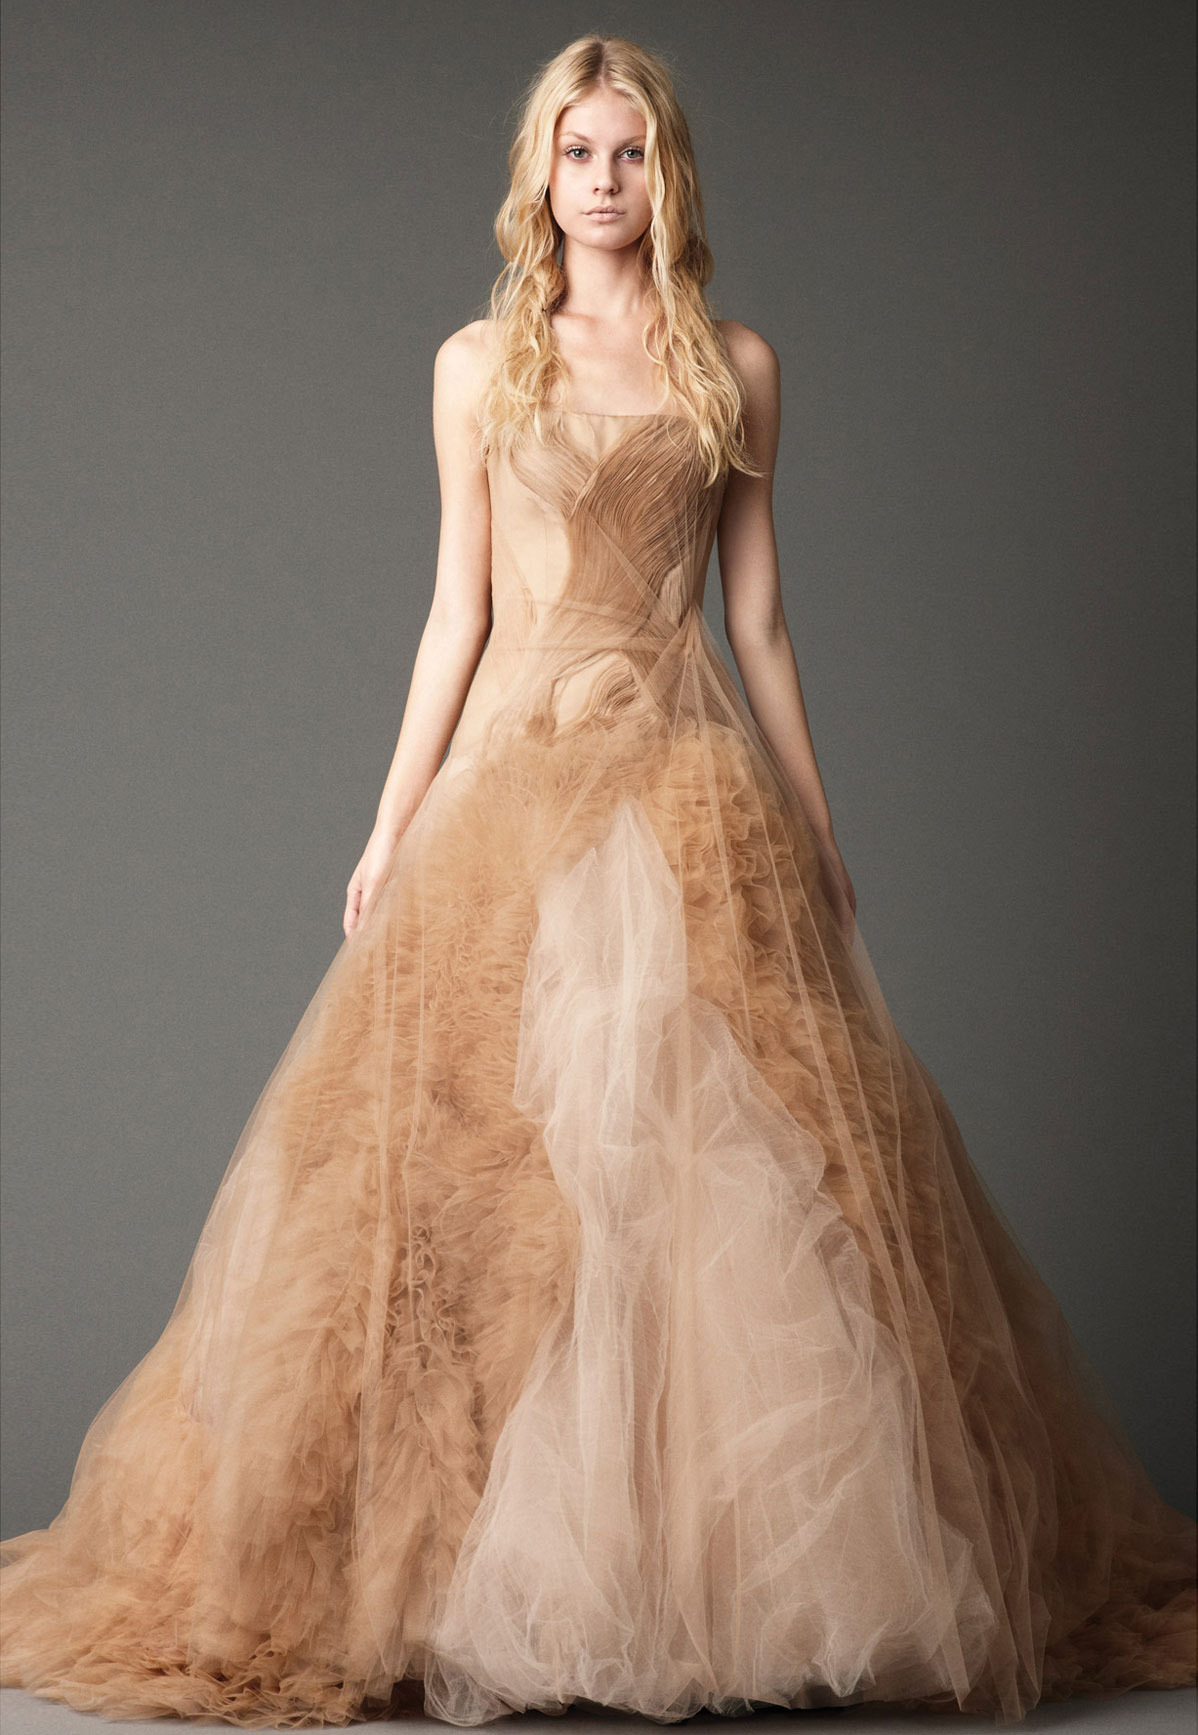 Gorgeous and stylish fall wedding dresses to inspire you for Dresses for a fall wedding